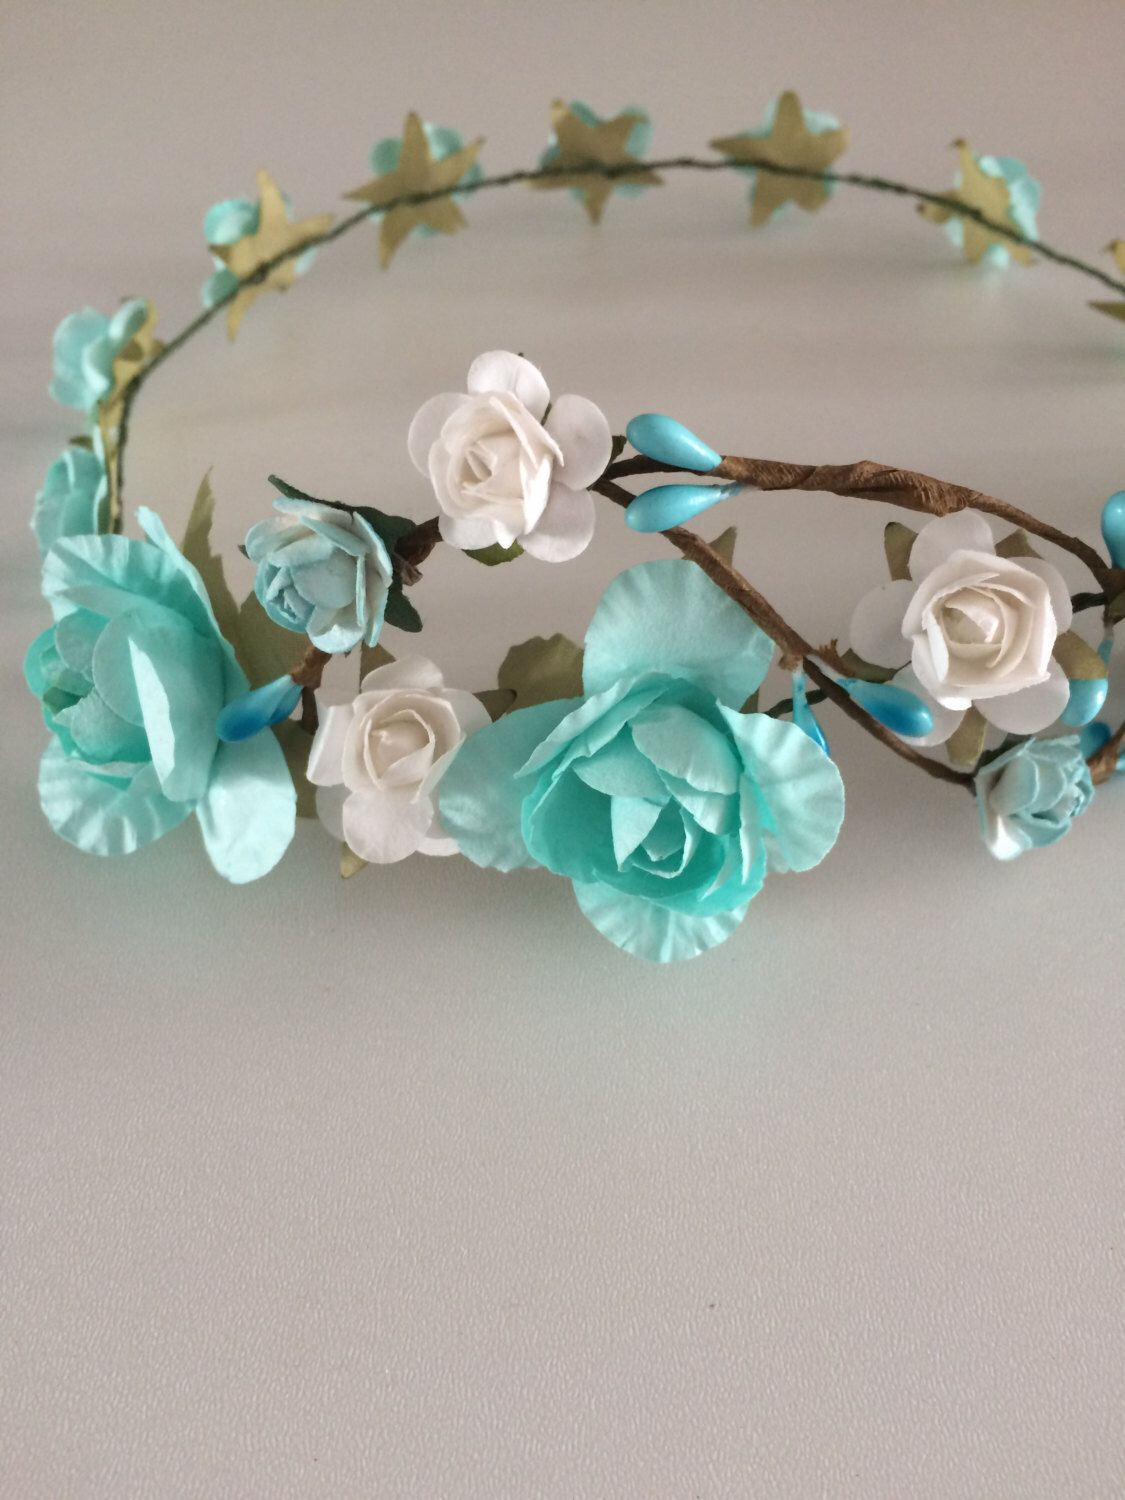 Flower crown rose crown turquoise and white rose tiara flower g flower crown rose crown turquoise and white rose tiara flower girl headband izmirmasajfo